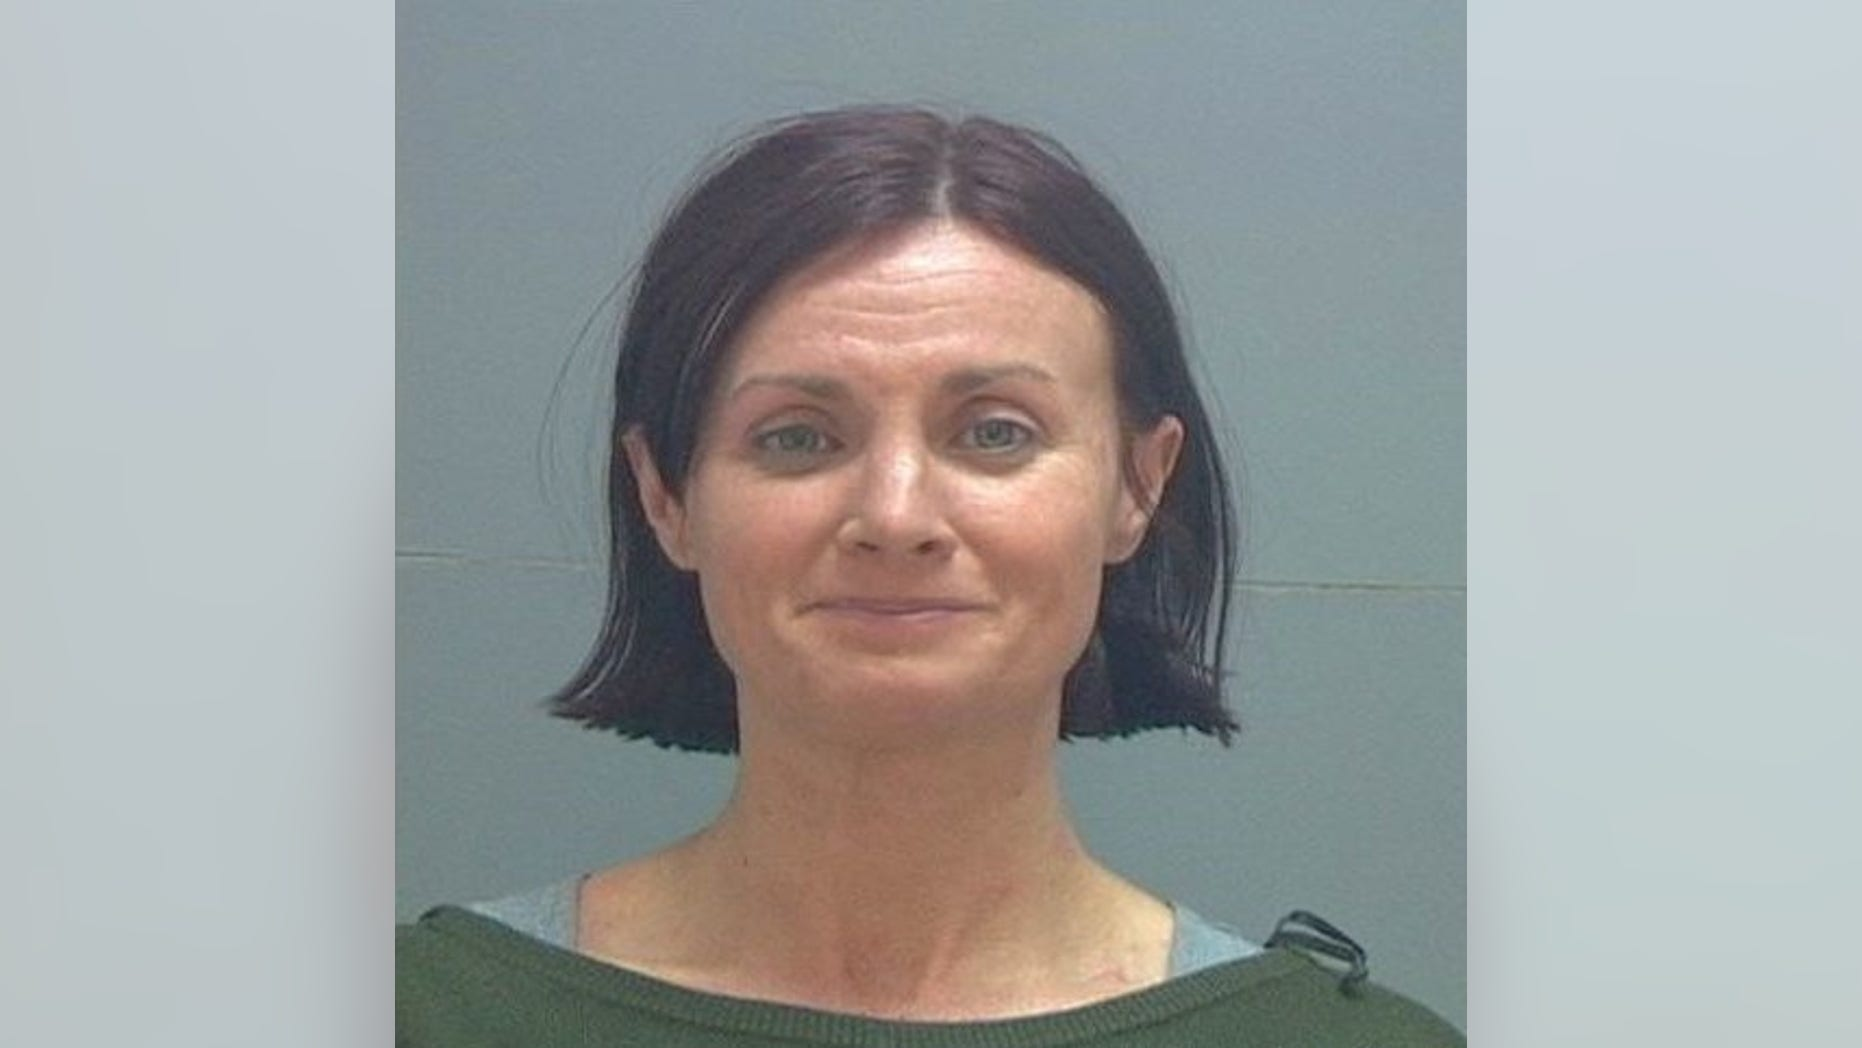 Sarah Maria Beach allegedly attacked a federal air marshal during a flight on Thursday.